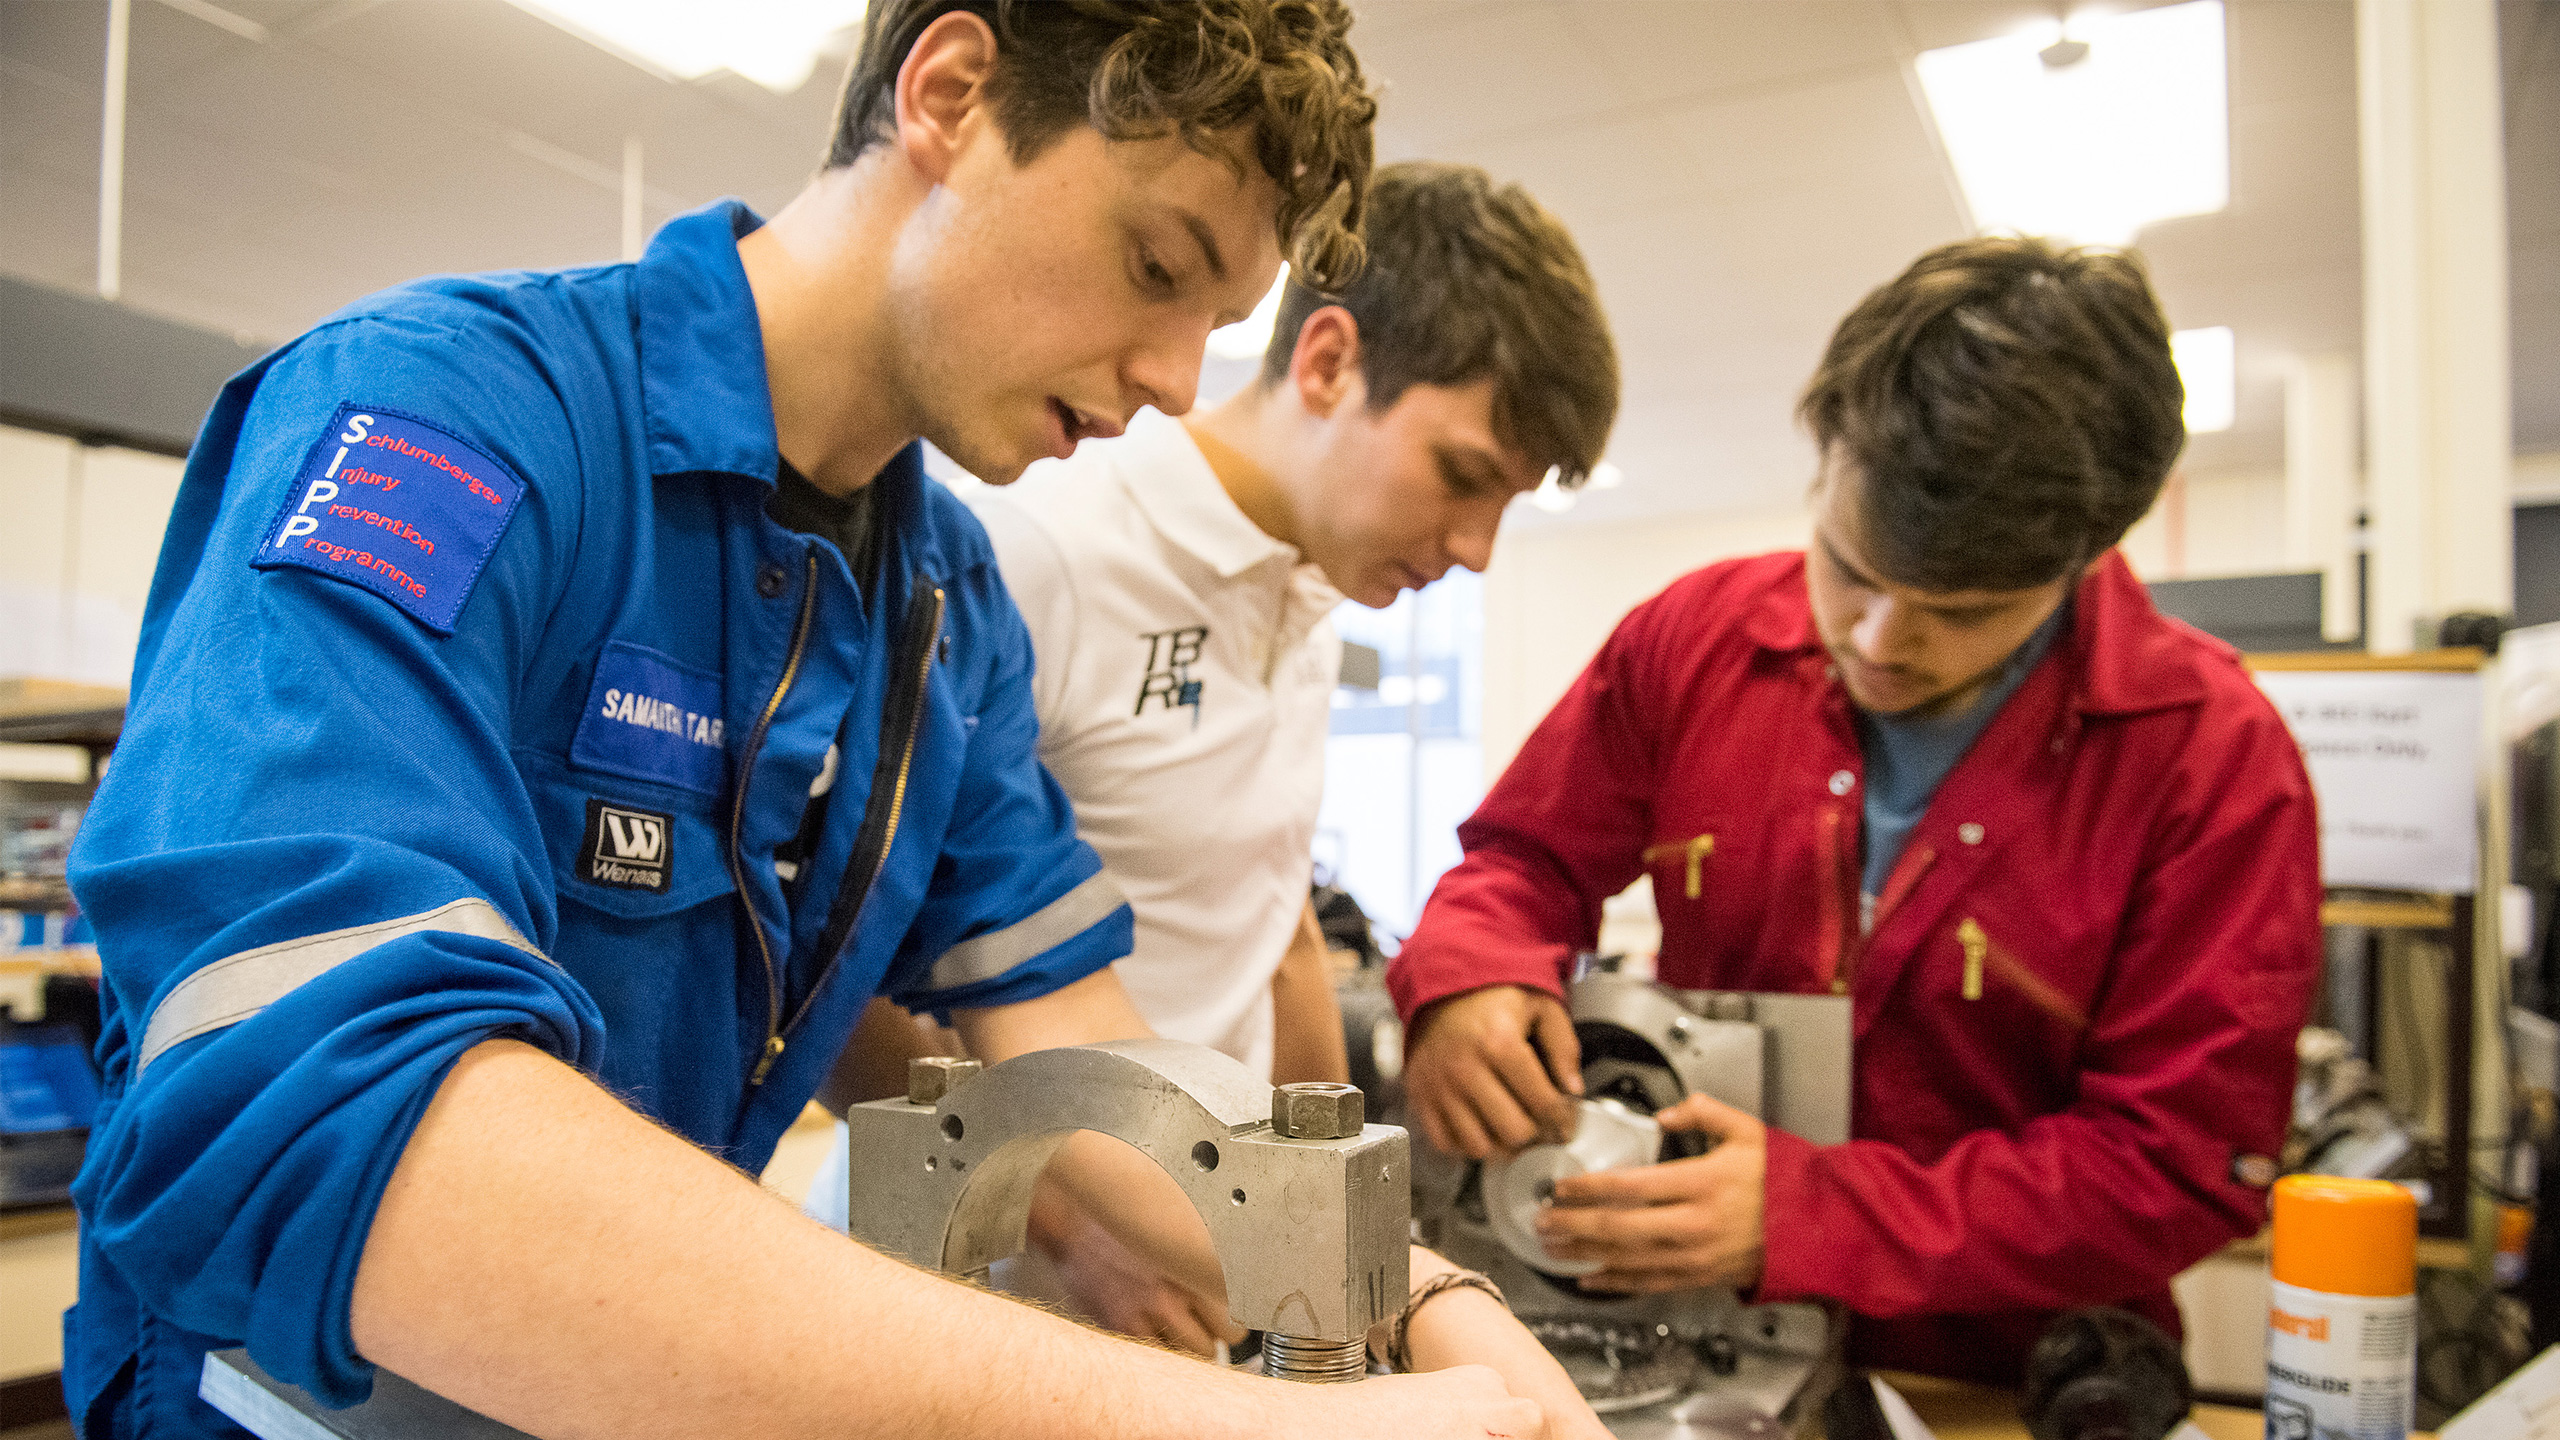 Students work on their Team Bath Racing Electric project in an electrical engineering project lab